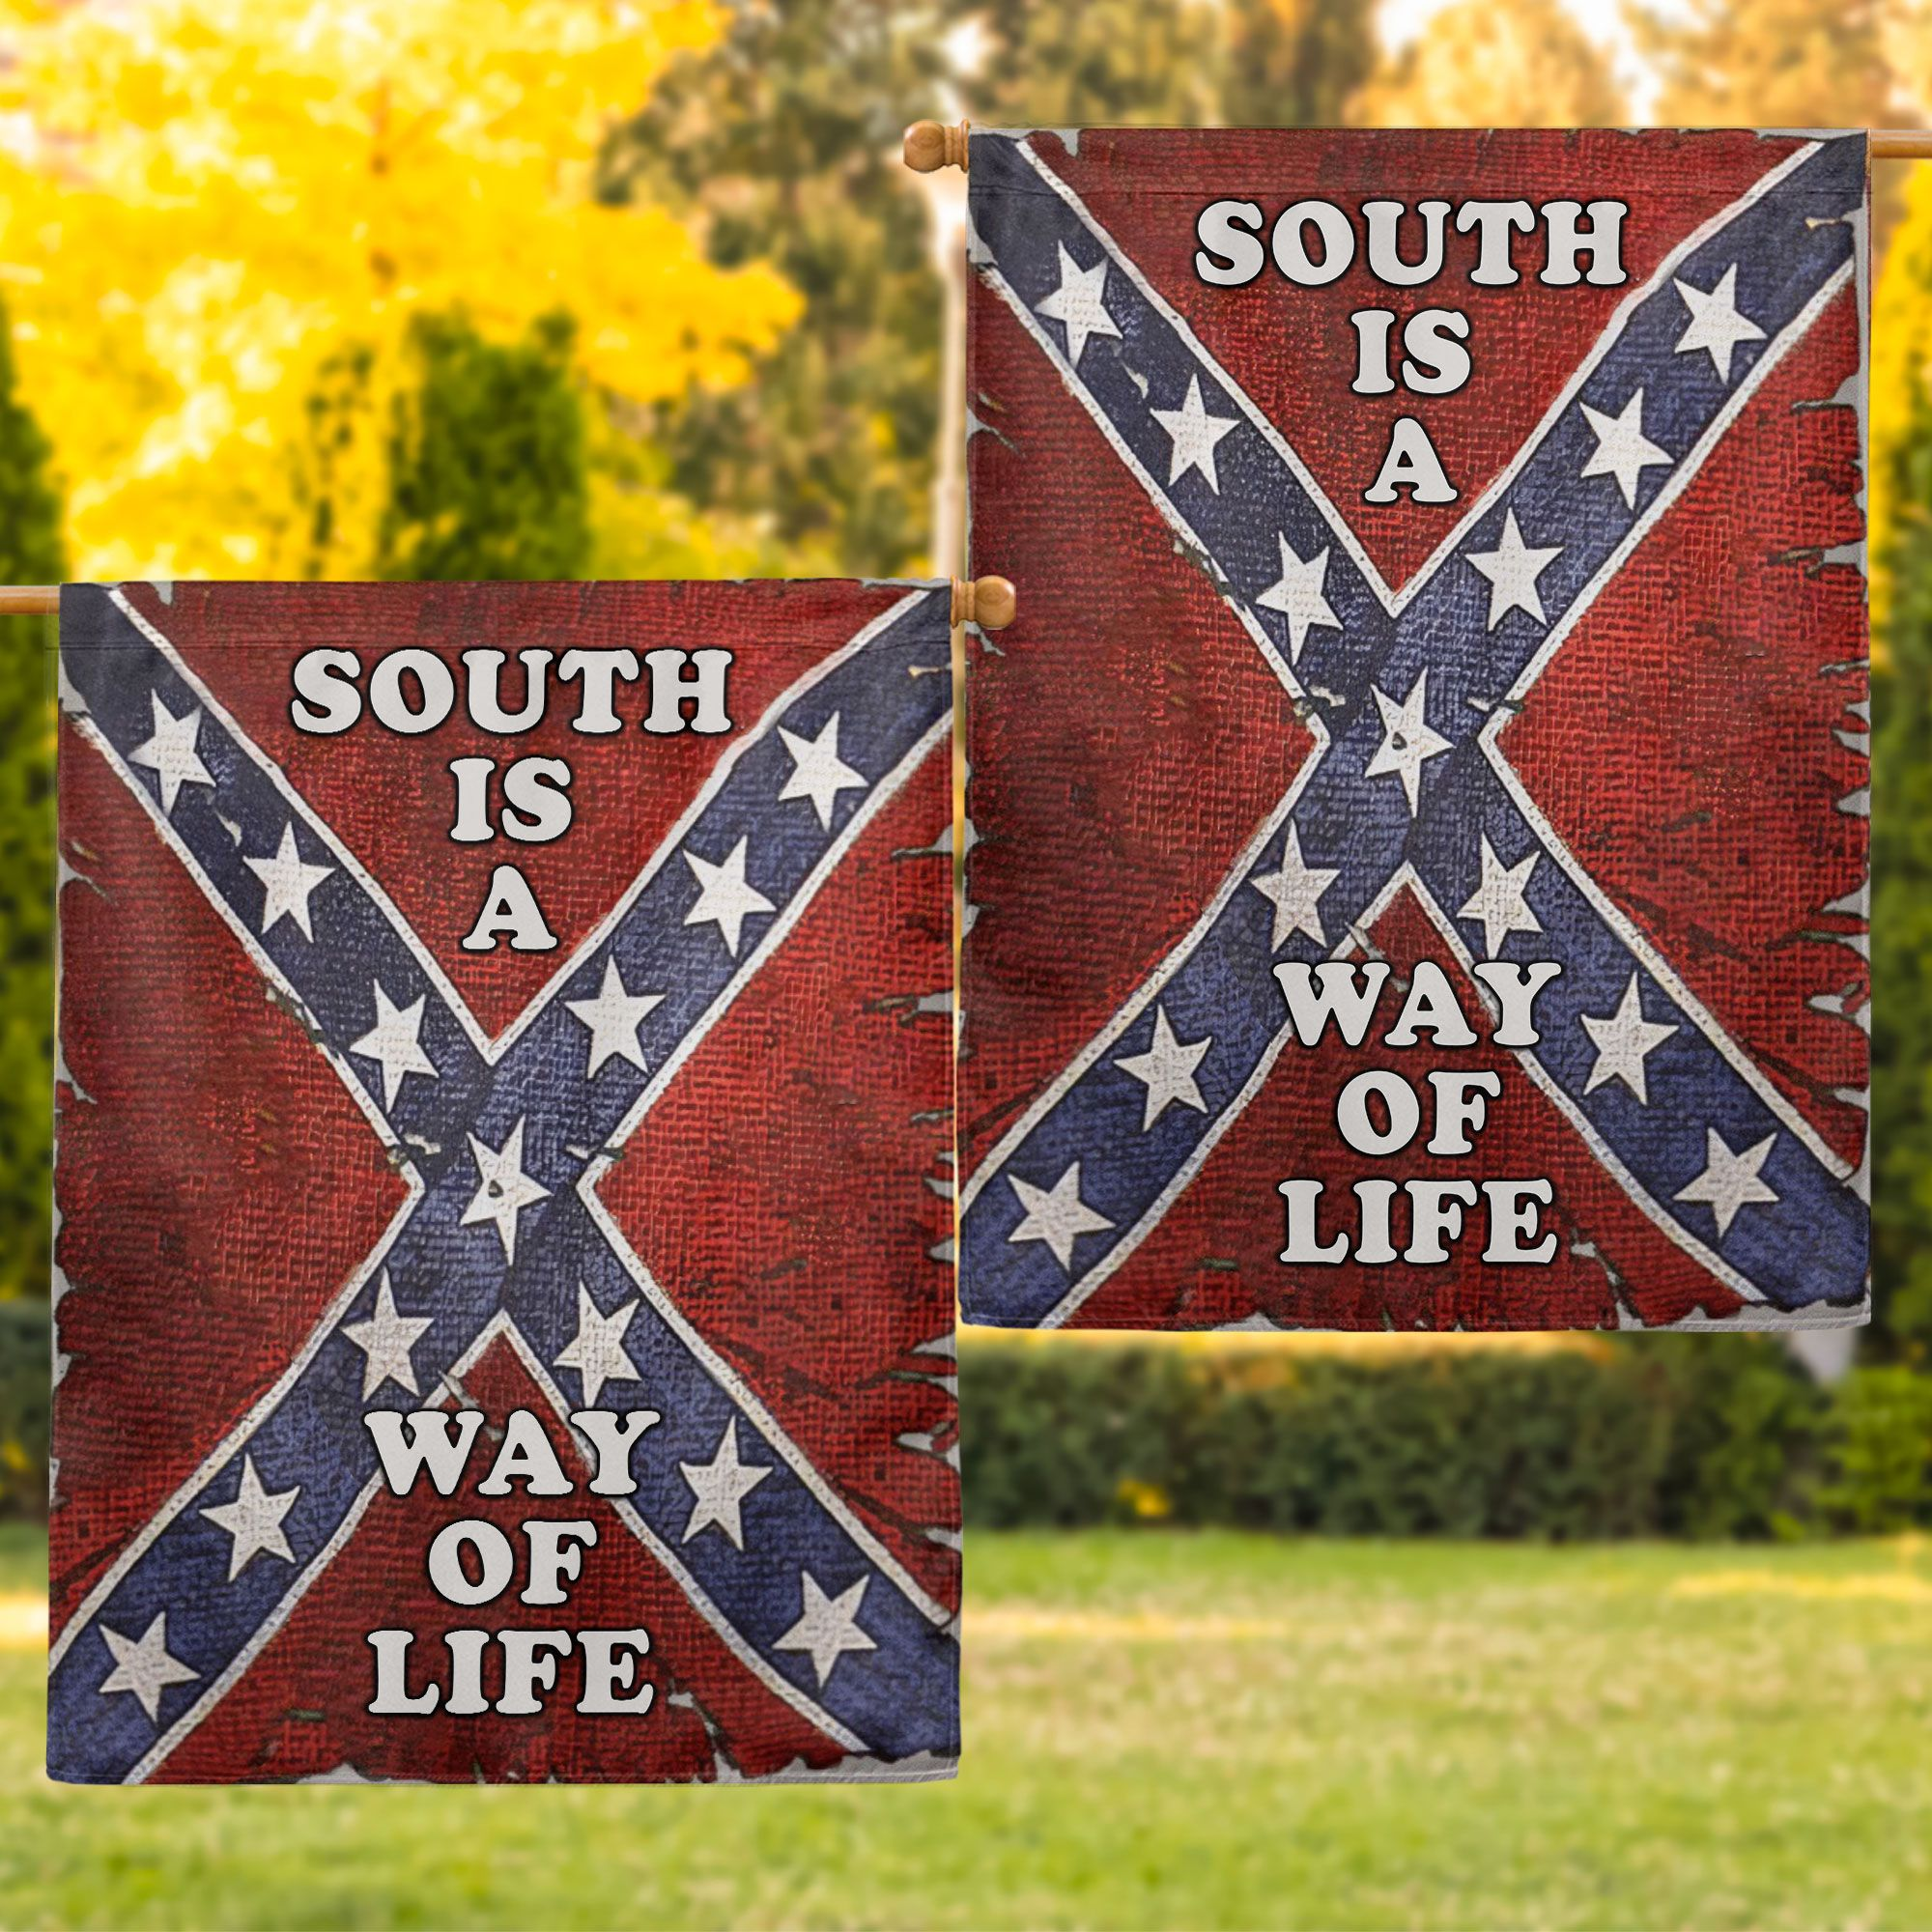 South is a way of life flag